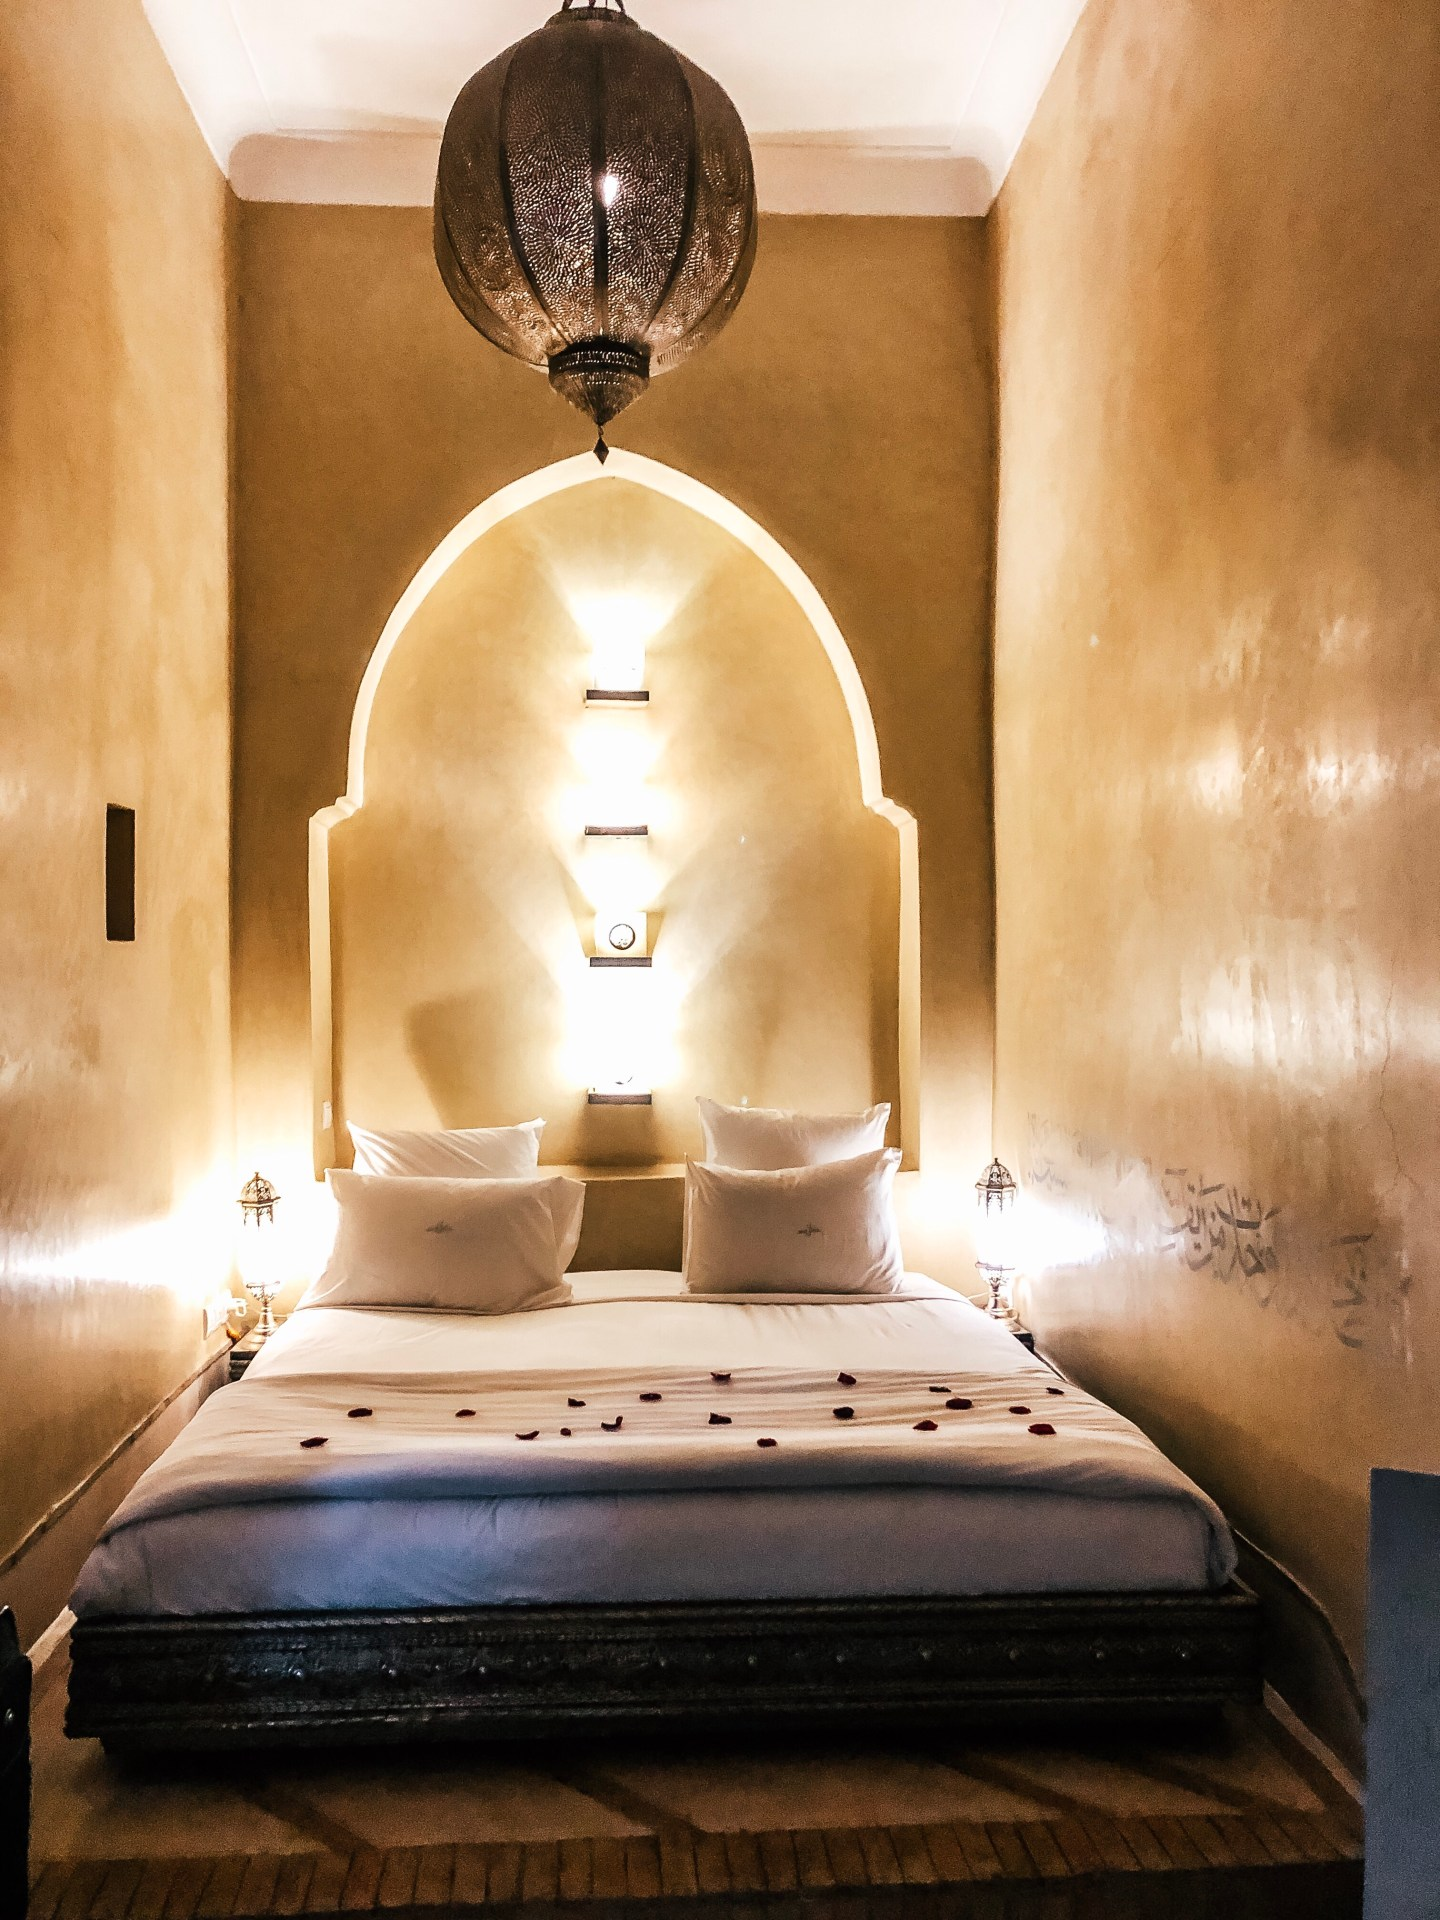 Guest room at Riad Anayela—Marrakech, Morocco